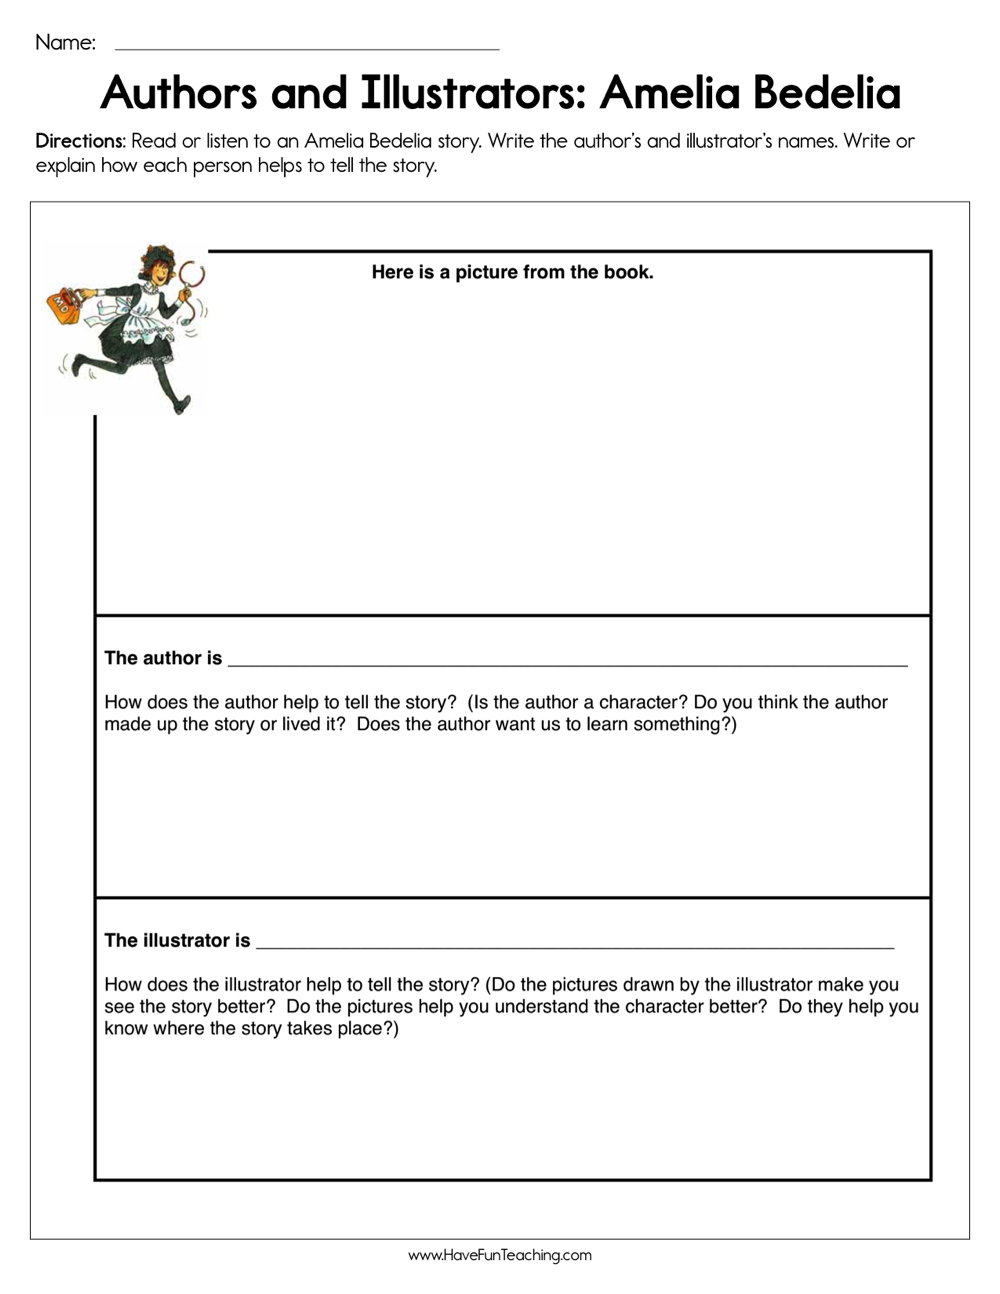 hight resolution of Amelia Bedelia Author and Illustrator Worksheet • Have Fun Teaching